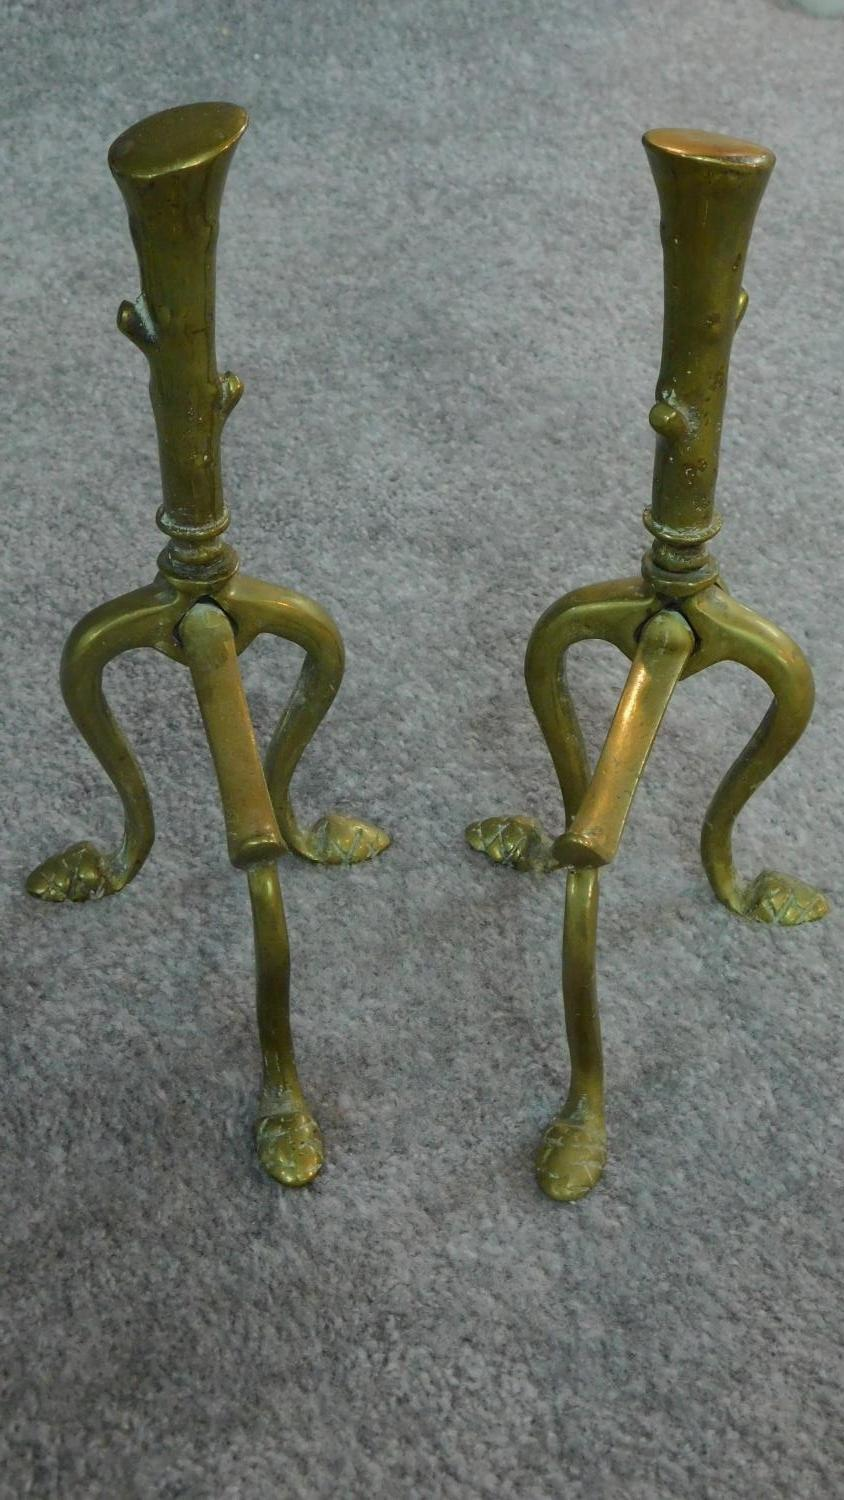 A set of 19th century brass fire implements and the matching andirons and a three section fireguard. - Image 2 of 6